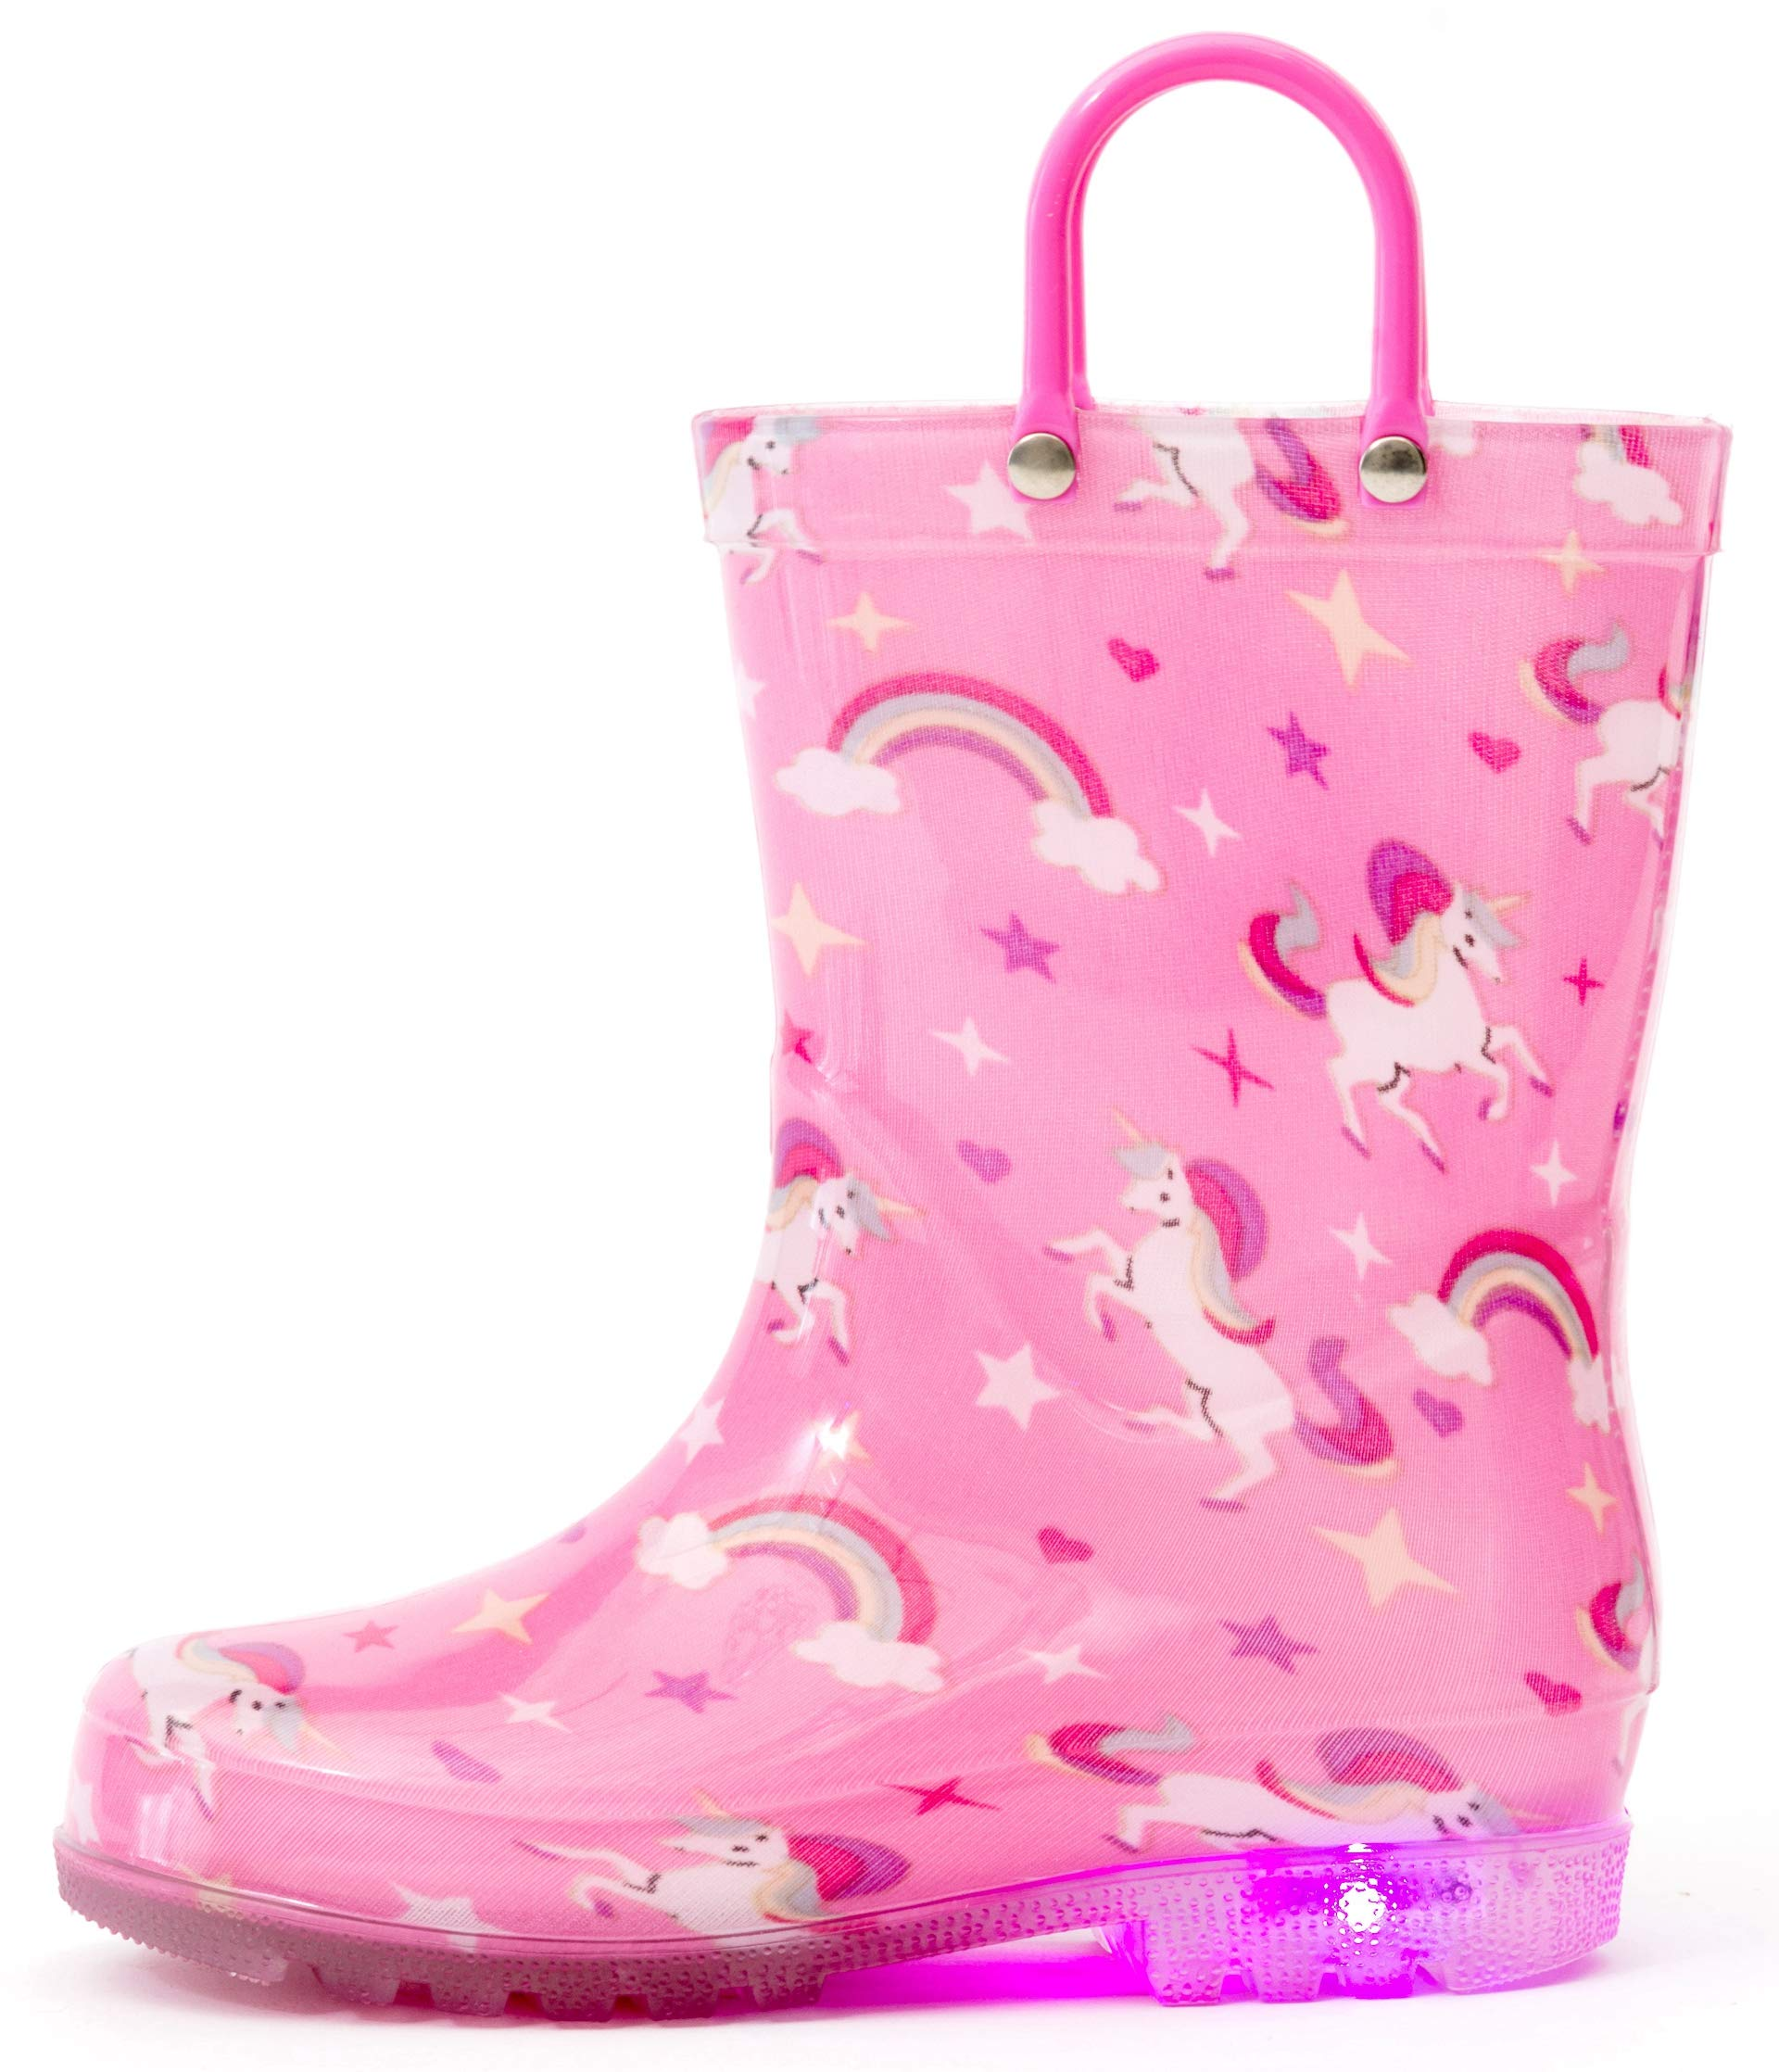 Outee Girls Kids Toddler Rain Boots Light Up Printed Waterproof Shoes Lightweight Cute Pink Unicorn with Easy-On Handles and Insole (Size 2,Pink)